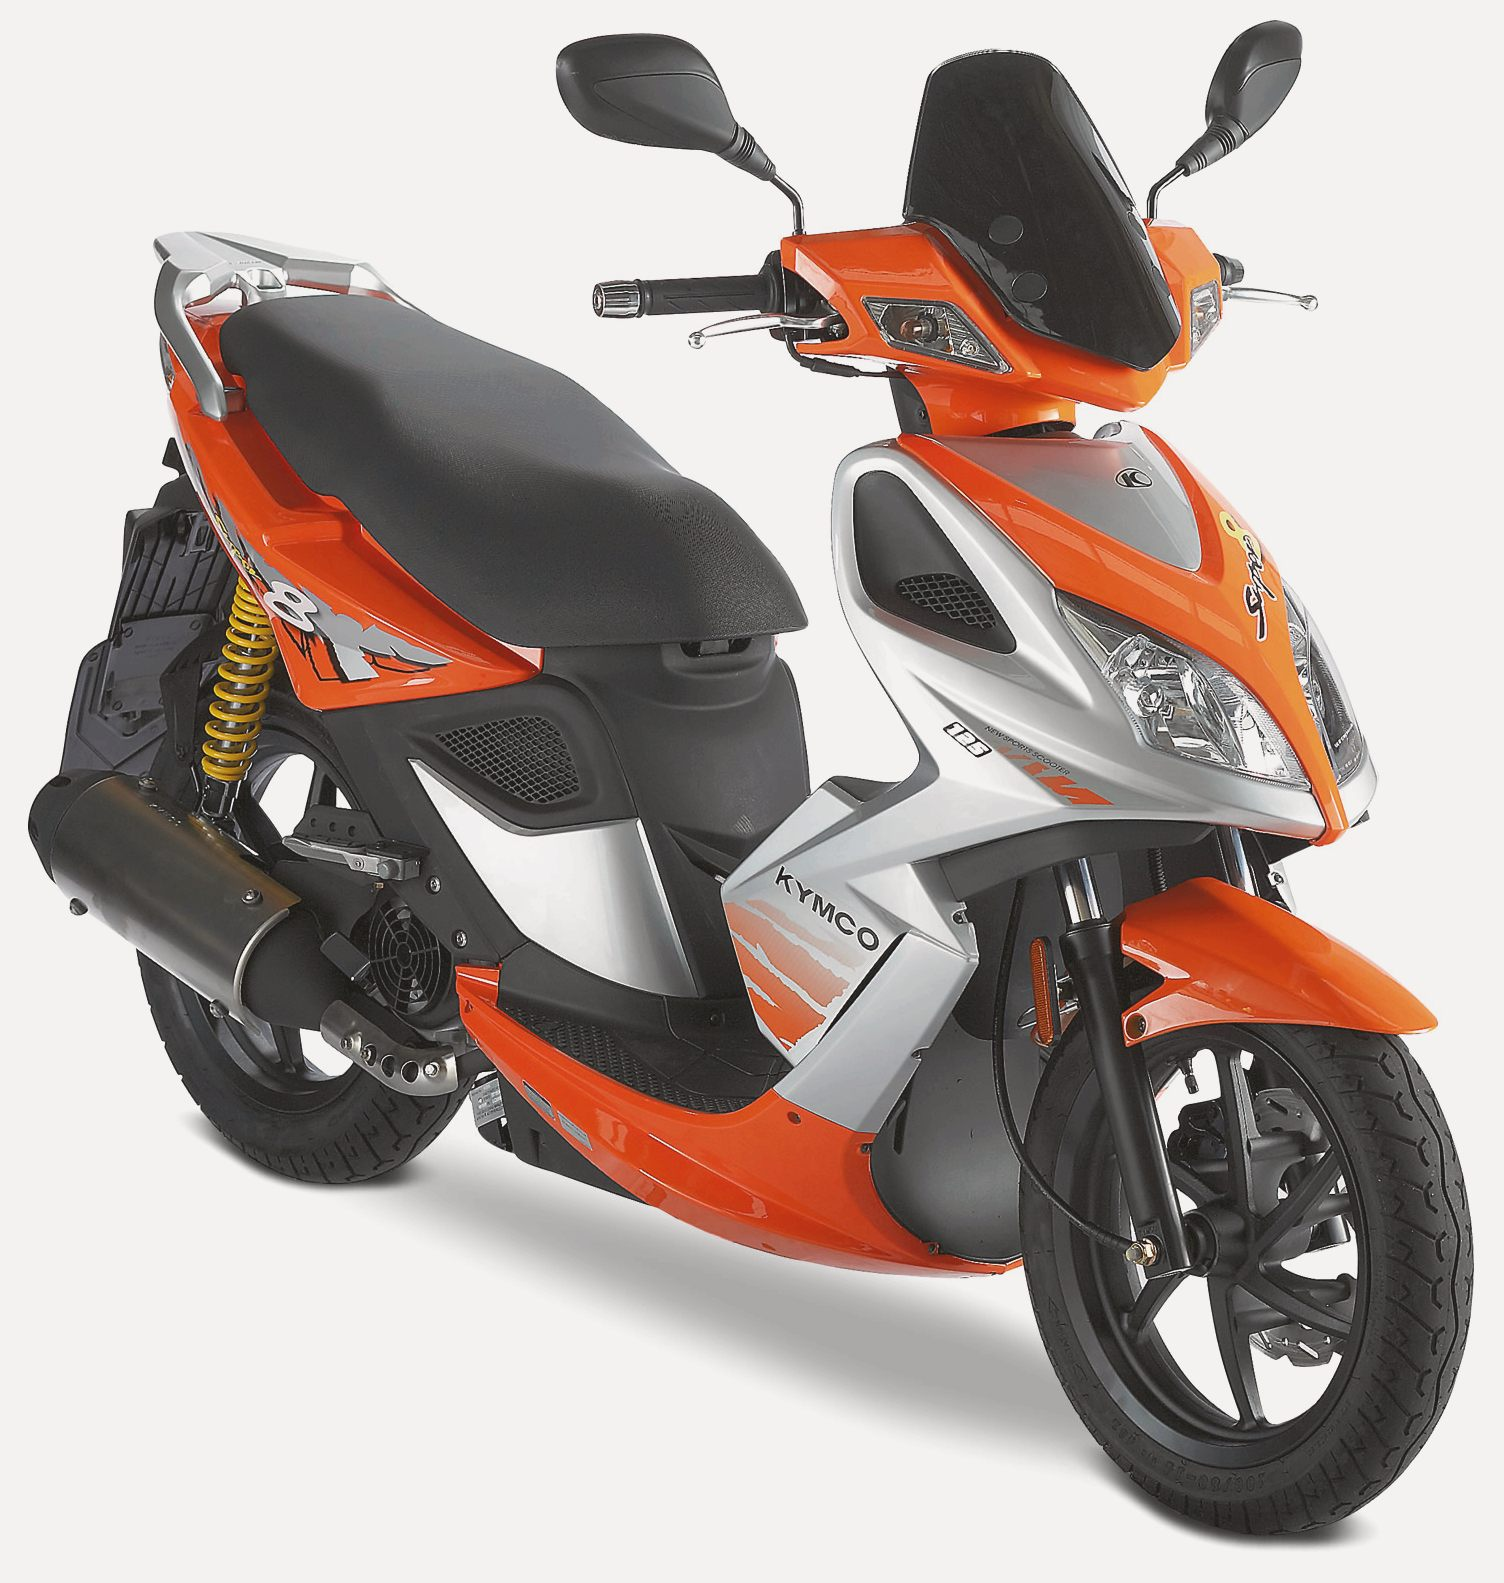 Kymco Super 8 2010 images #102103